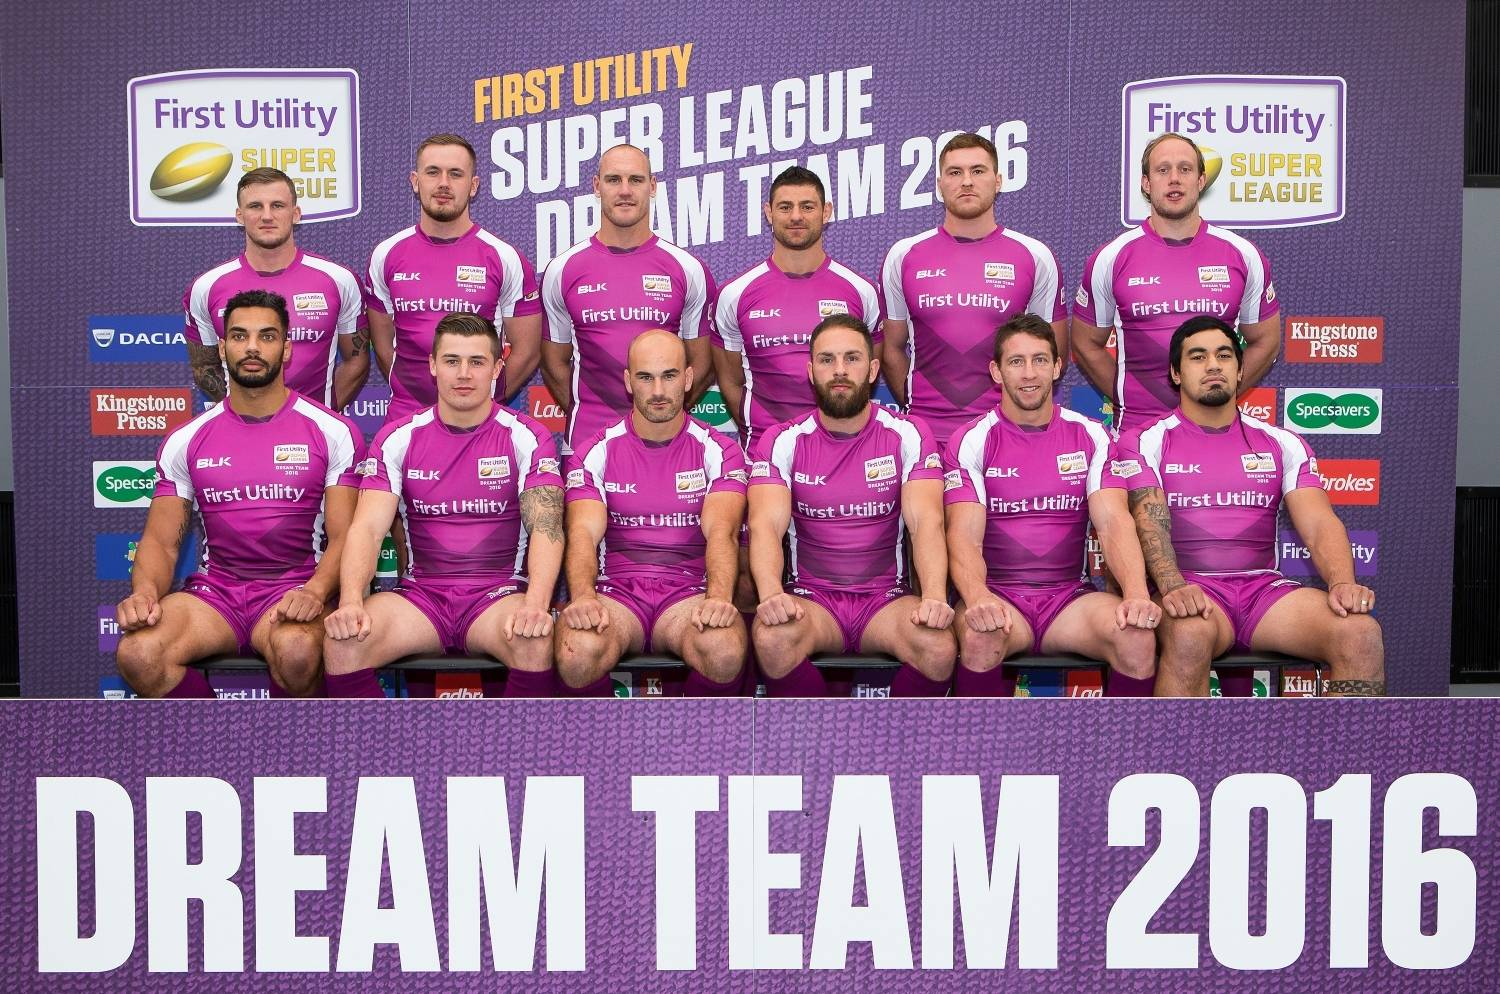 5bed096fdfb 2016 First Utility Super League Dream Team revealed